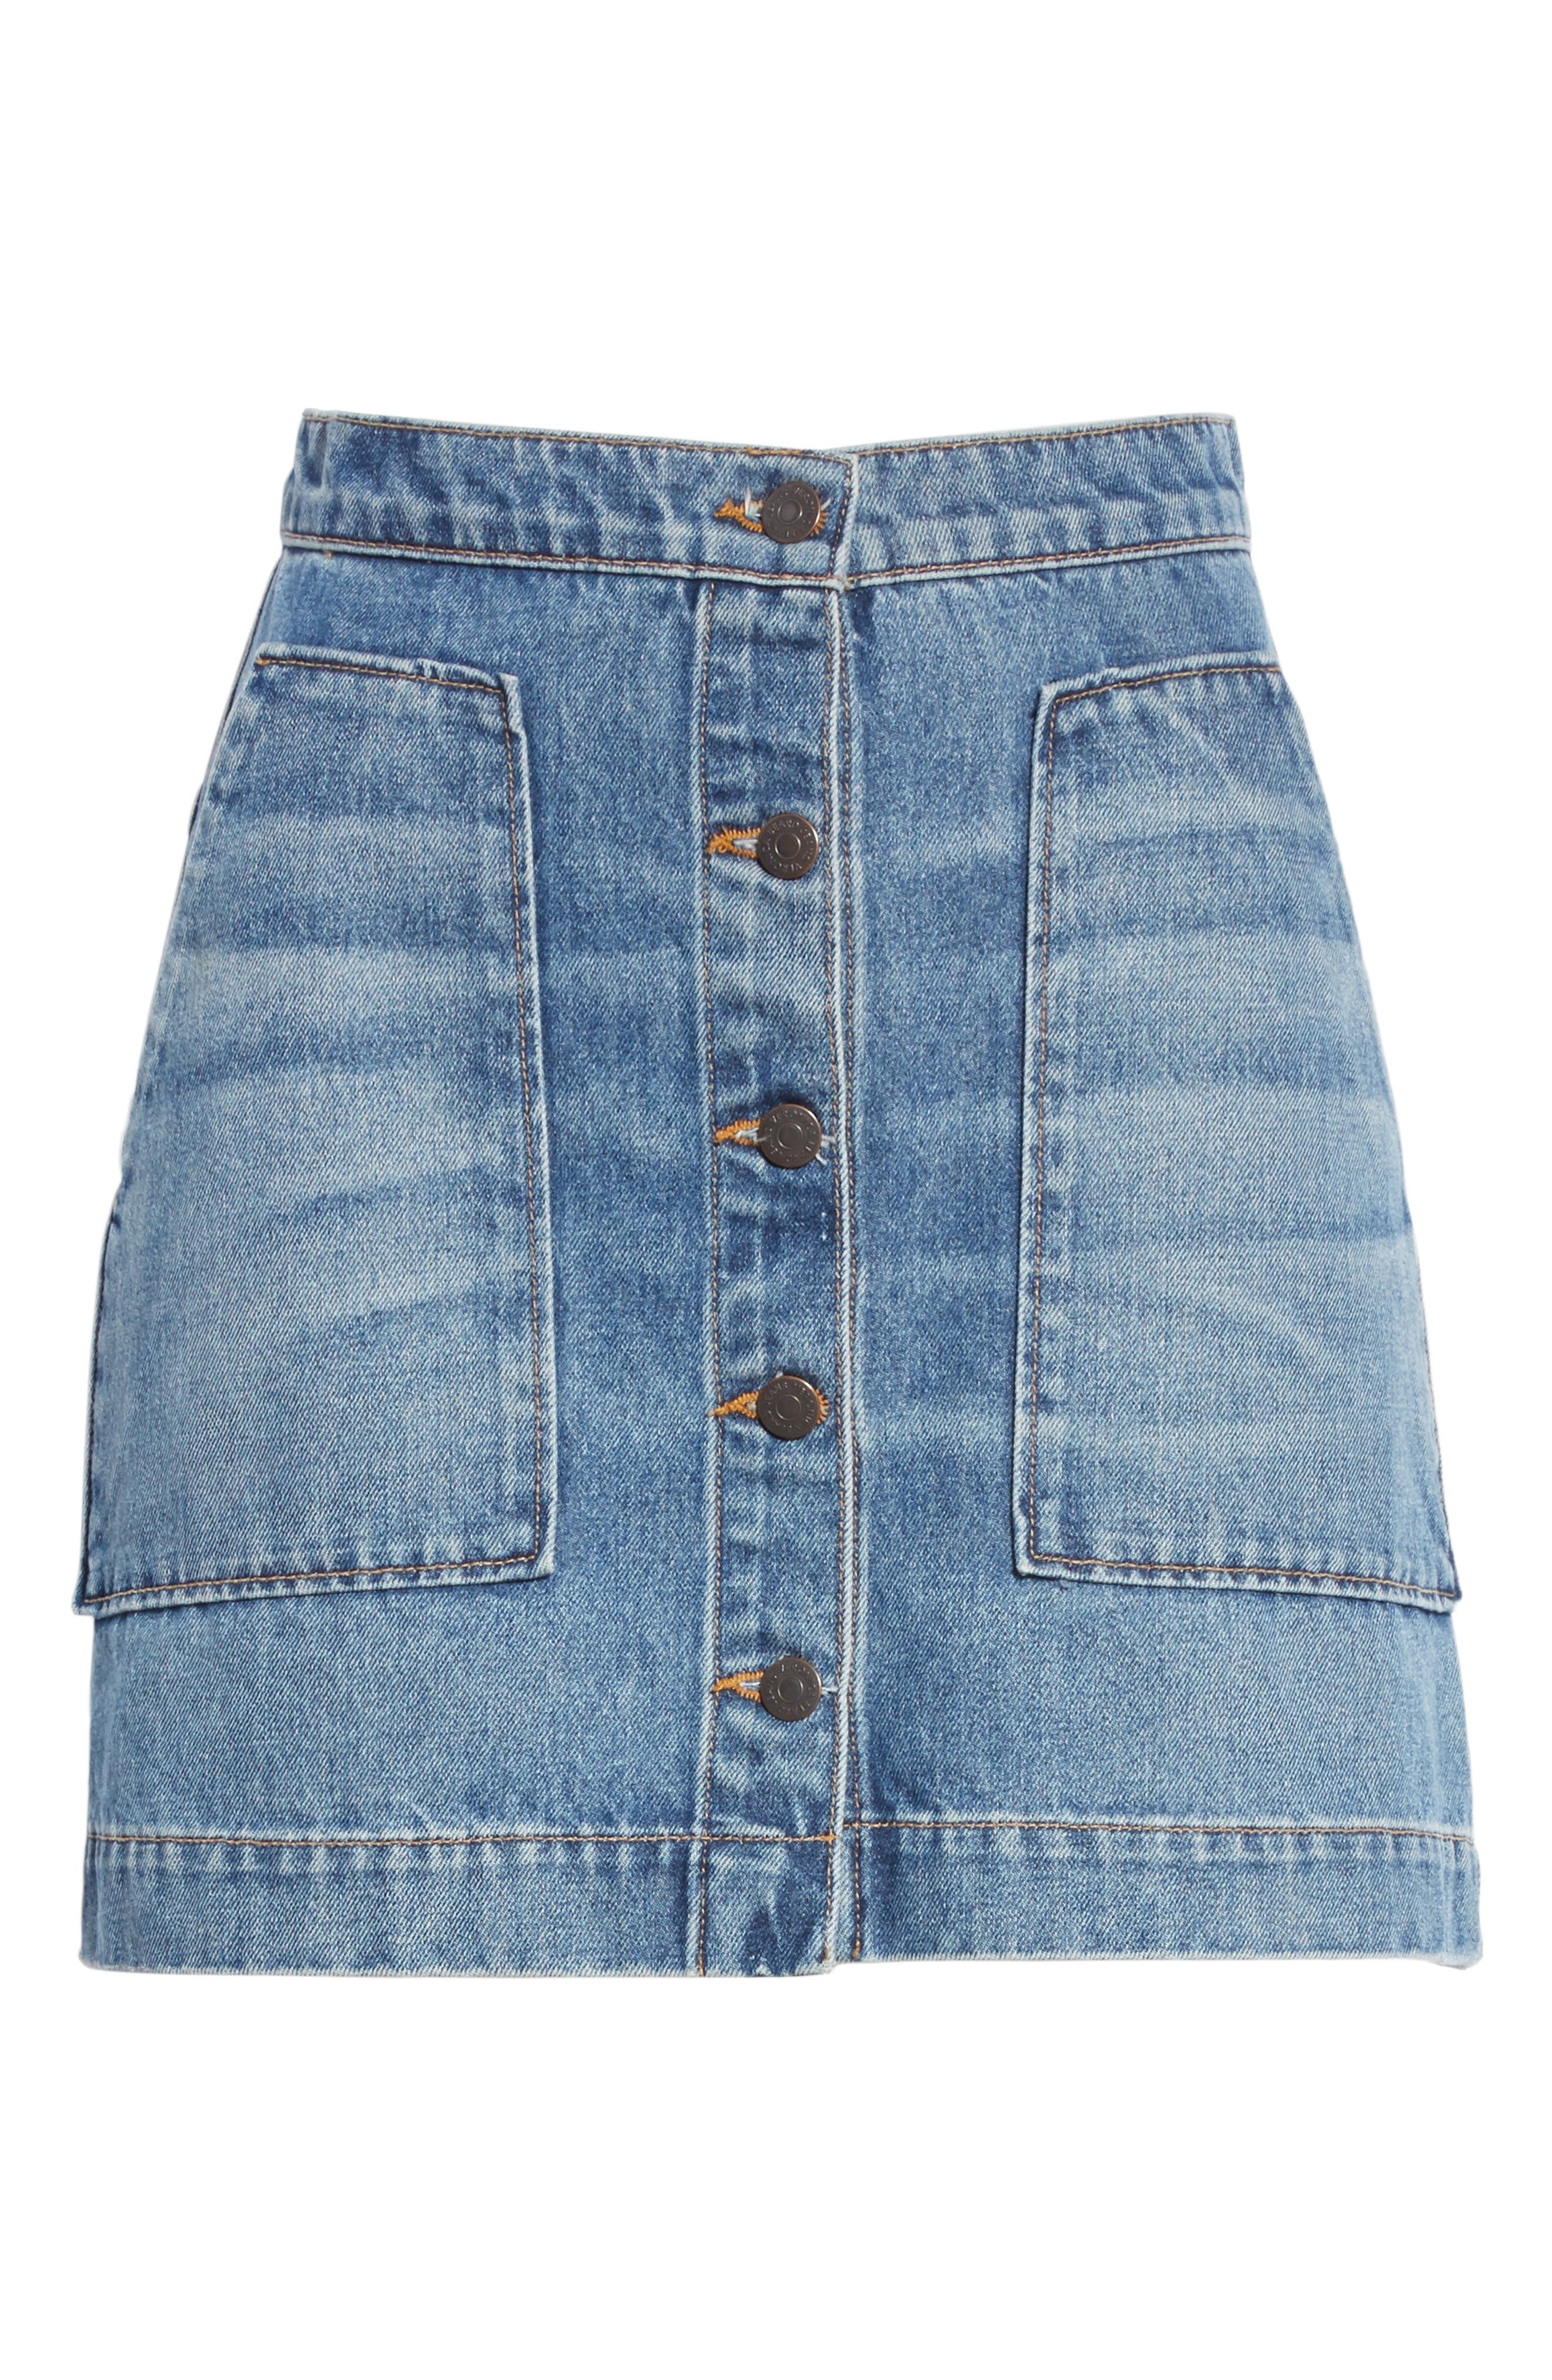 VERONICA BEARD,                             Getty Denim Skirt,                             Alternate thumbnail 7, color,                             499